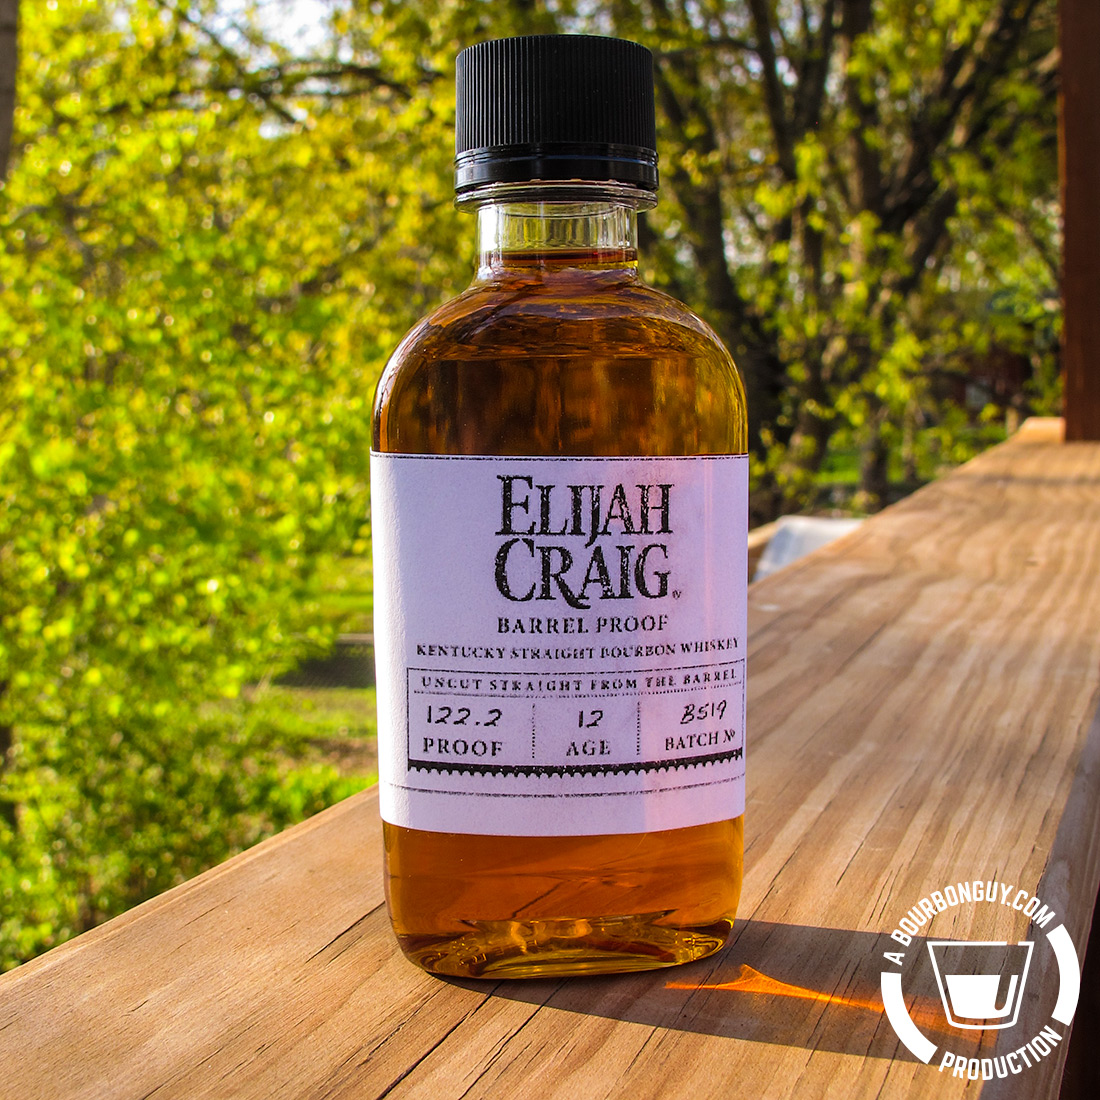 IMAGE: A sample bottle of Elijah Craig Barrel Proof, Batch B519. It is 12 years old and 122.2° proof.